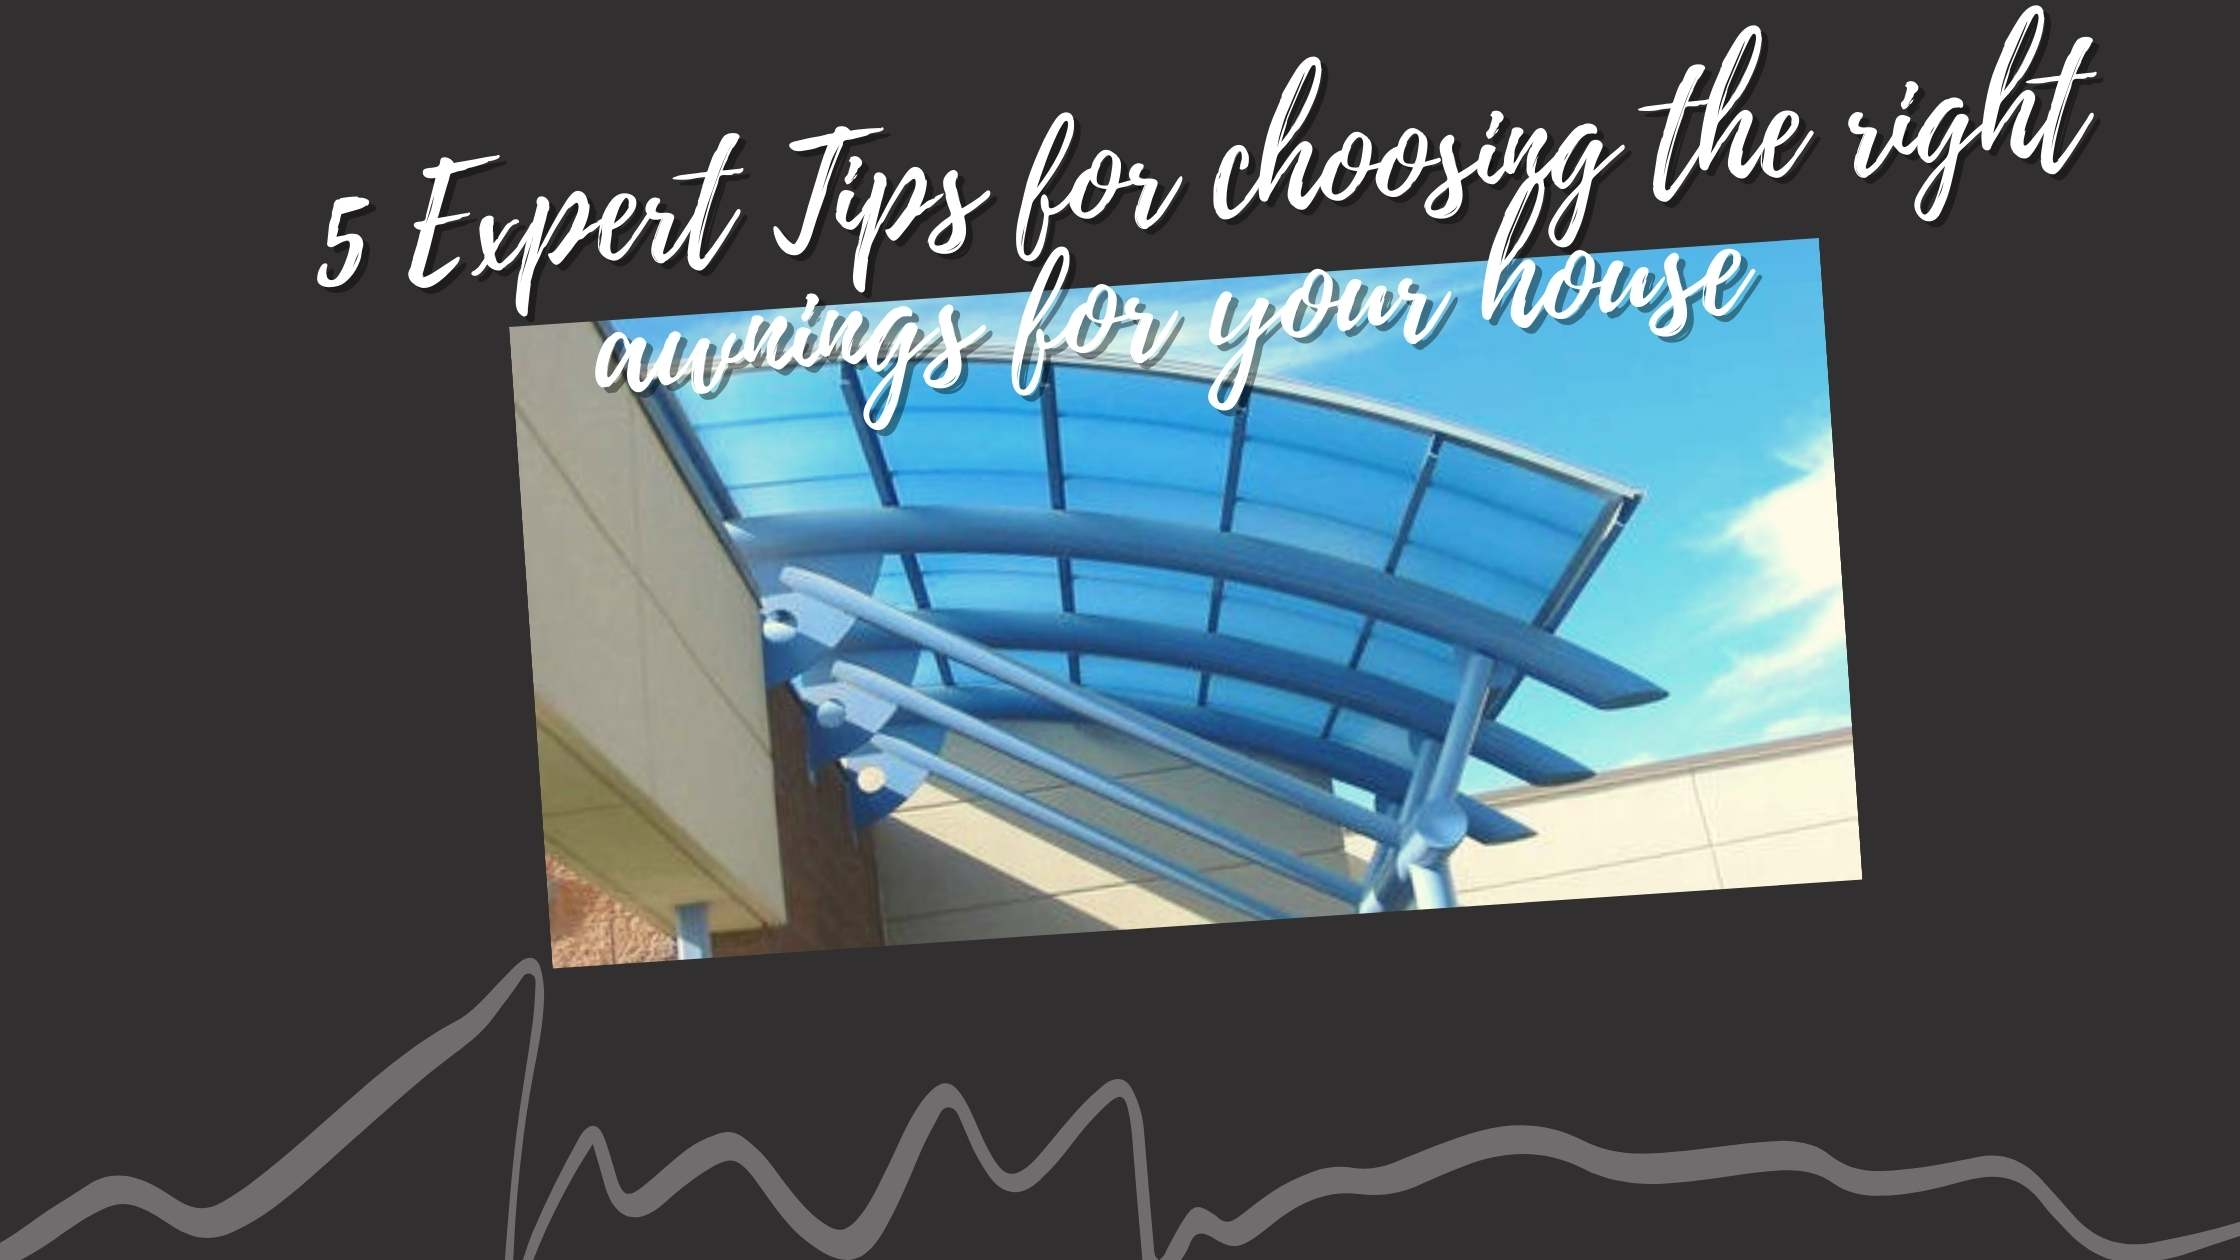 5 Expert Tips for choosing the right awnings for your house